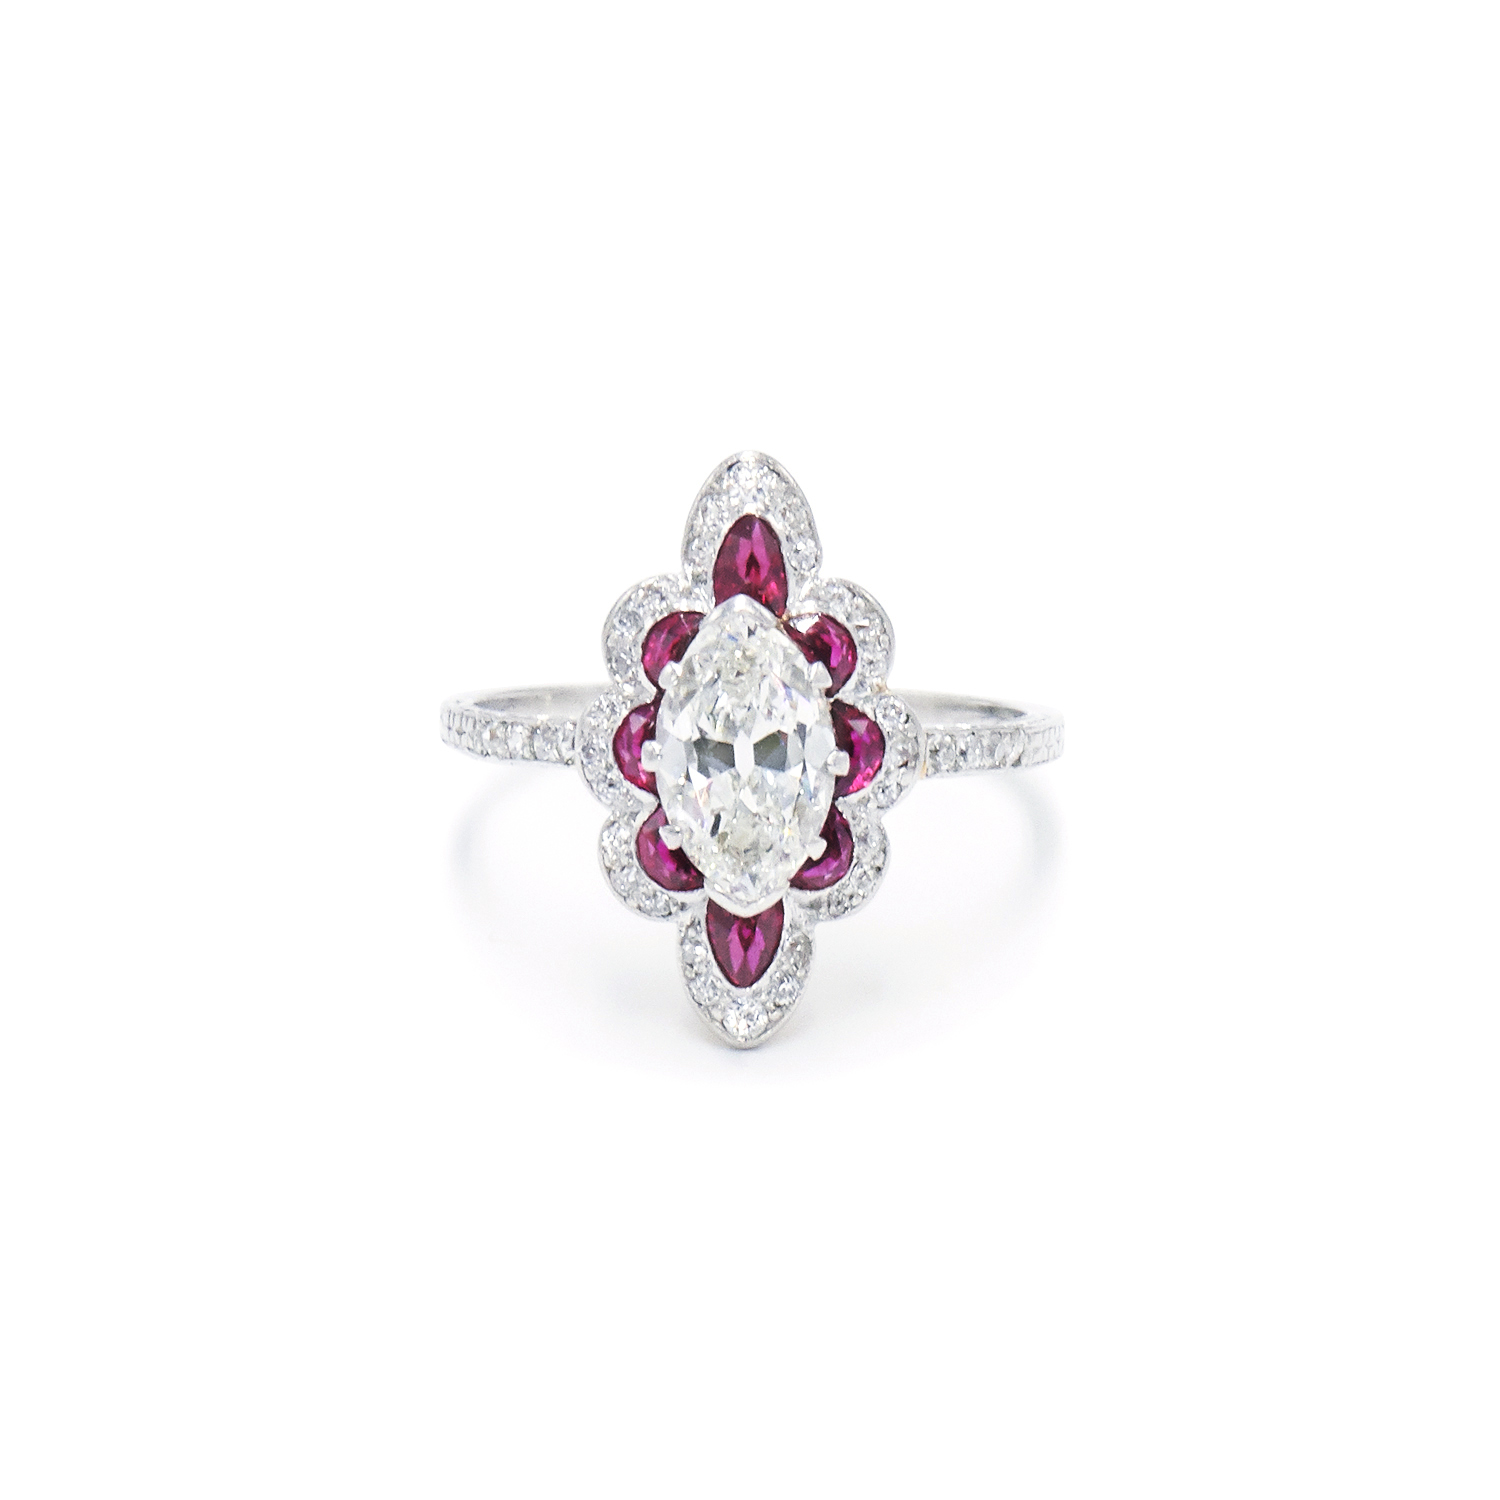 Edwardian Marquise Diamond and Ruby Scalloped Navette Ring Style F-40109-FL-0-0